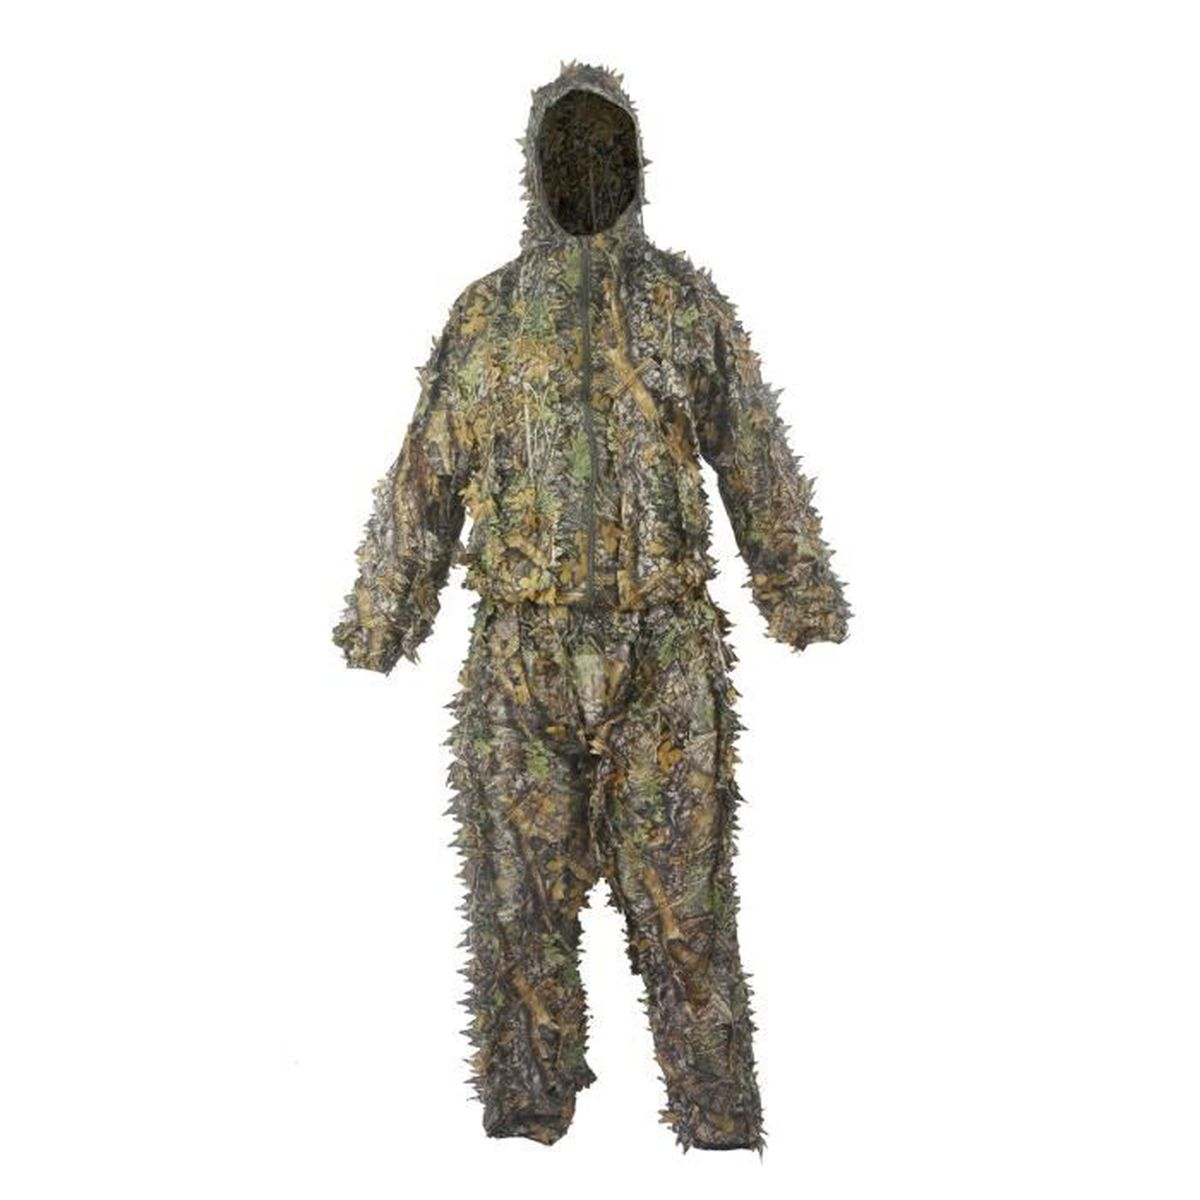 mega deal 3d ghillie suit woodland camouflage camo. Black Bedroom Furniture Sets. Home Design Ideas